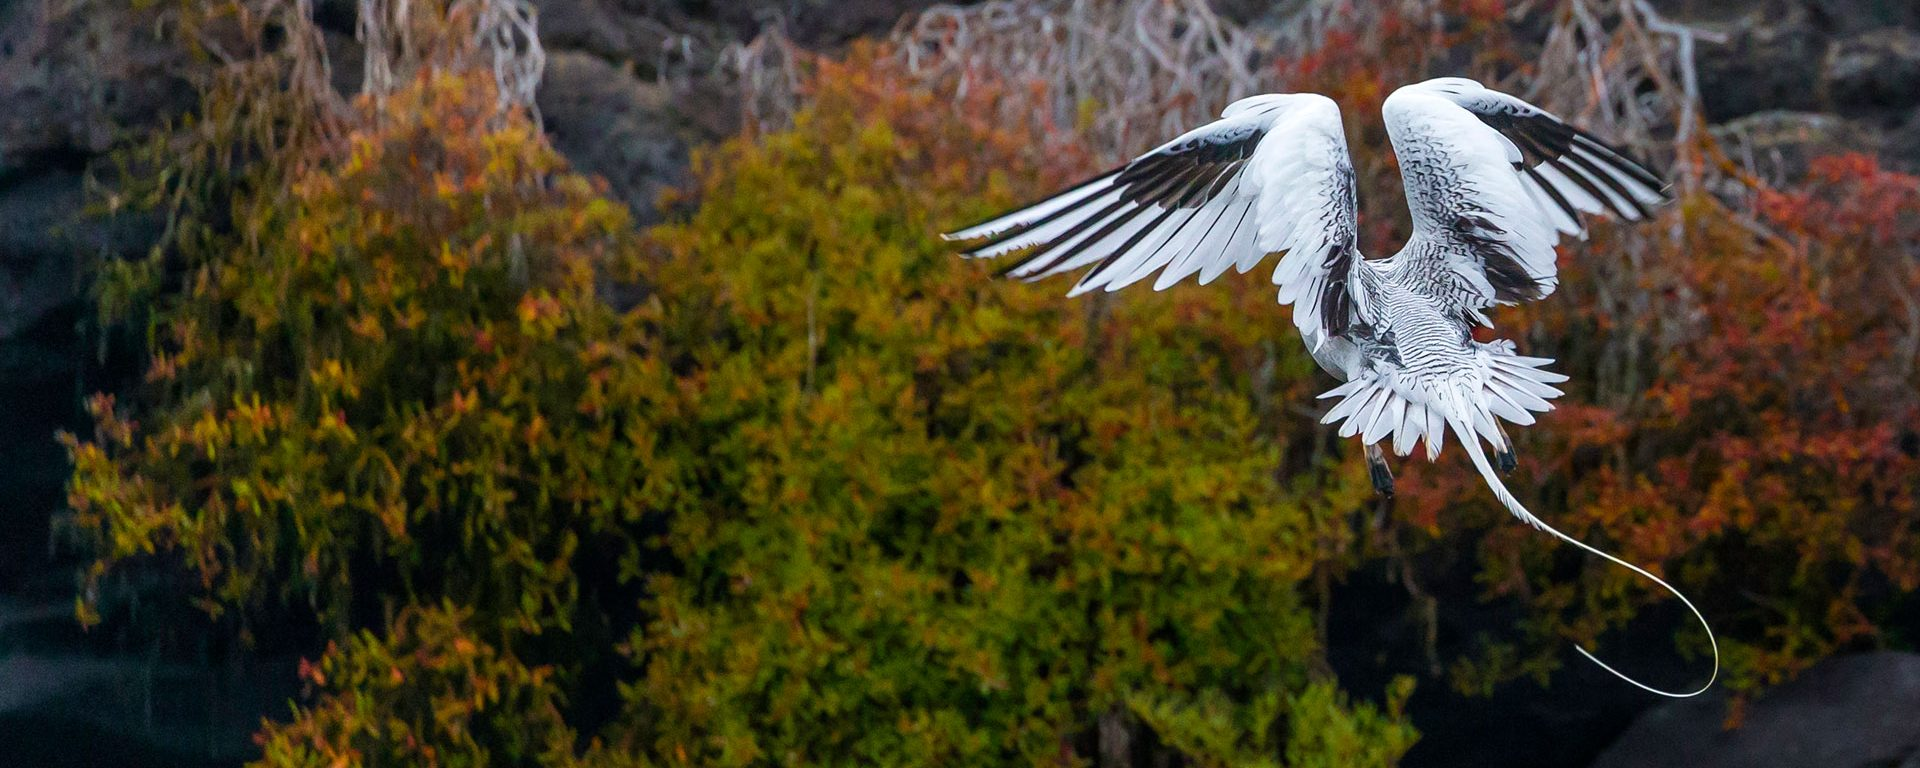 Red-billed tropicbird hovers among the rocky cliffs of the Galapagos Islands, Ecuador